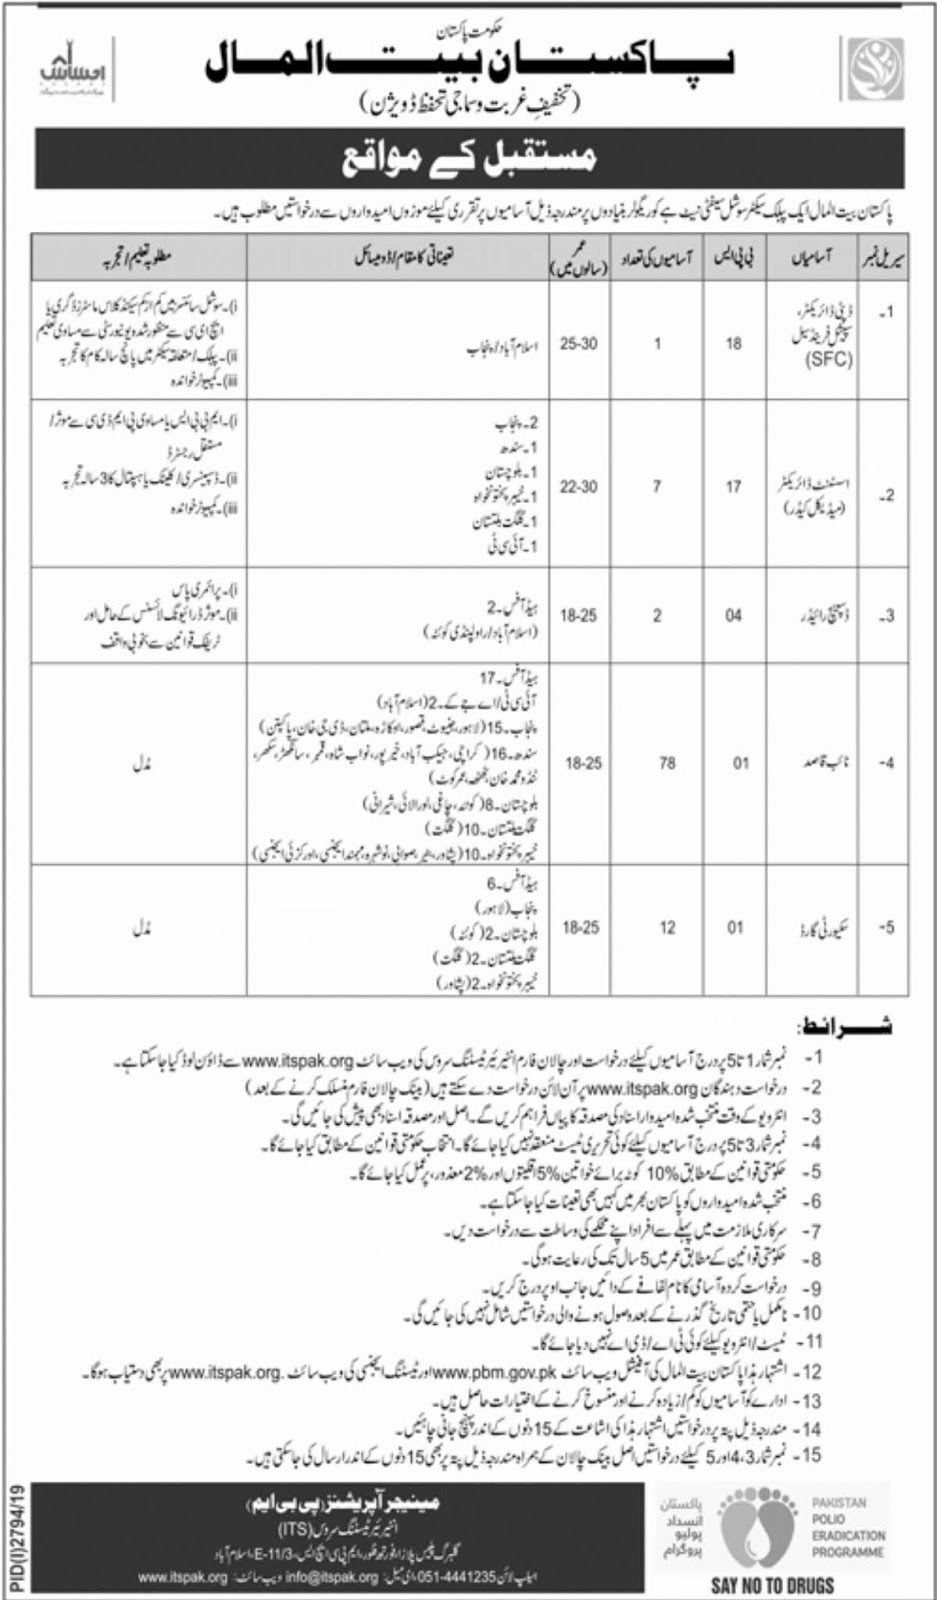 Pakistan Bait ul Mal Jobs 2019 Application Form